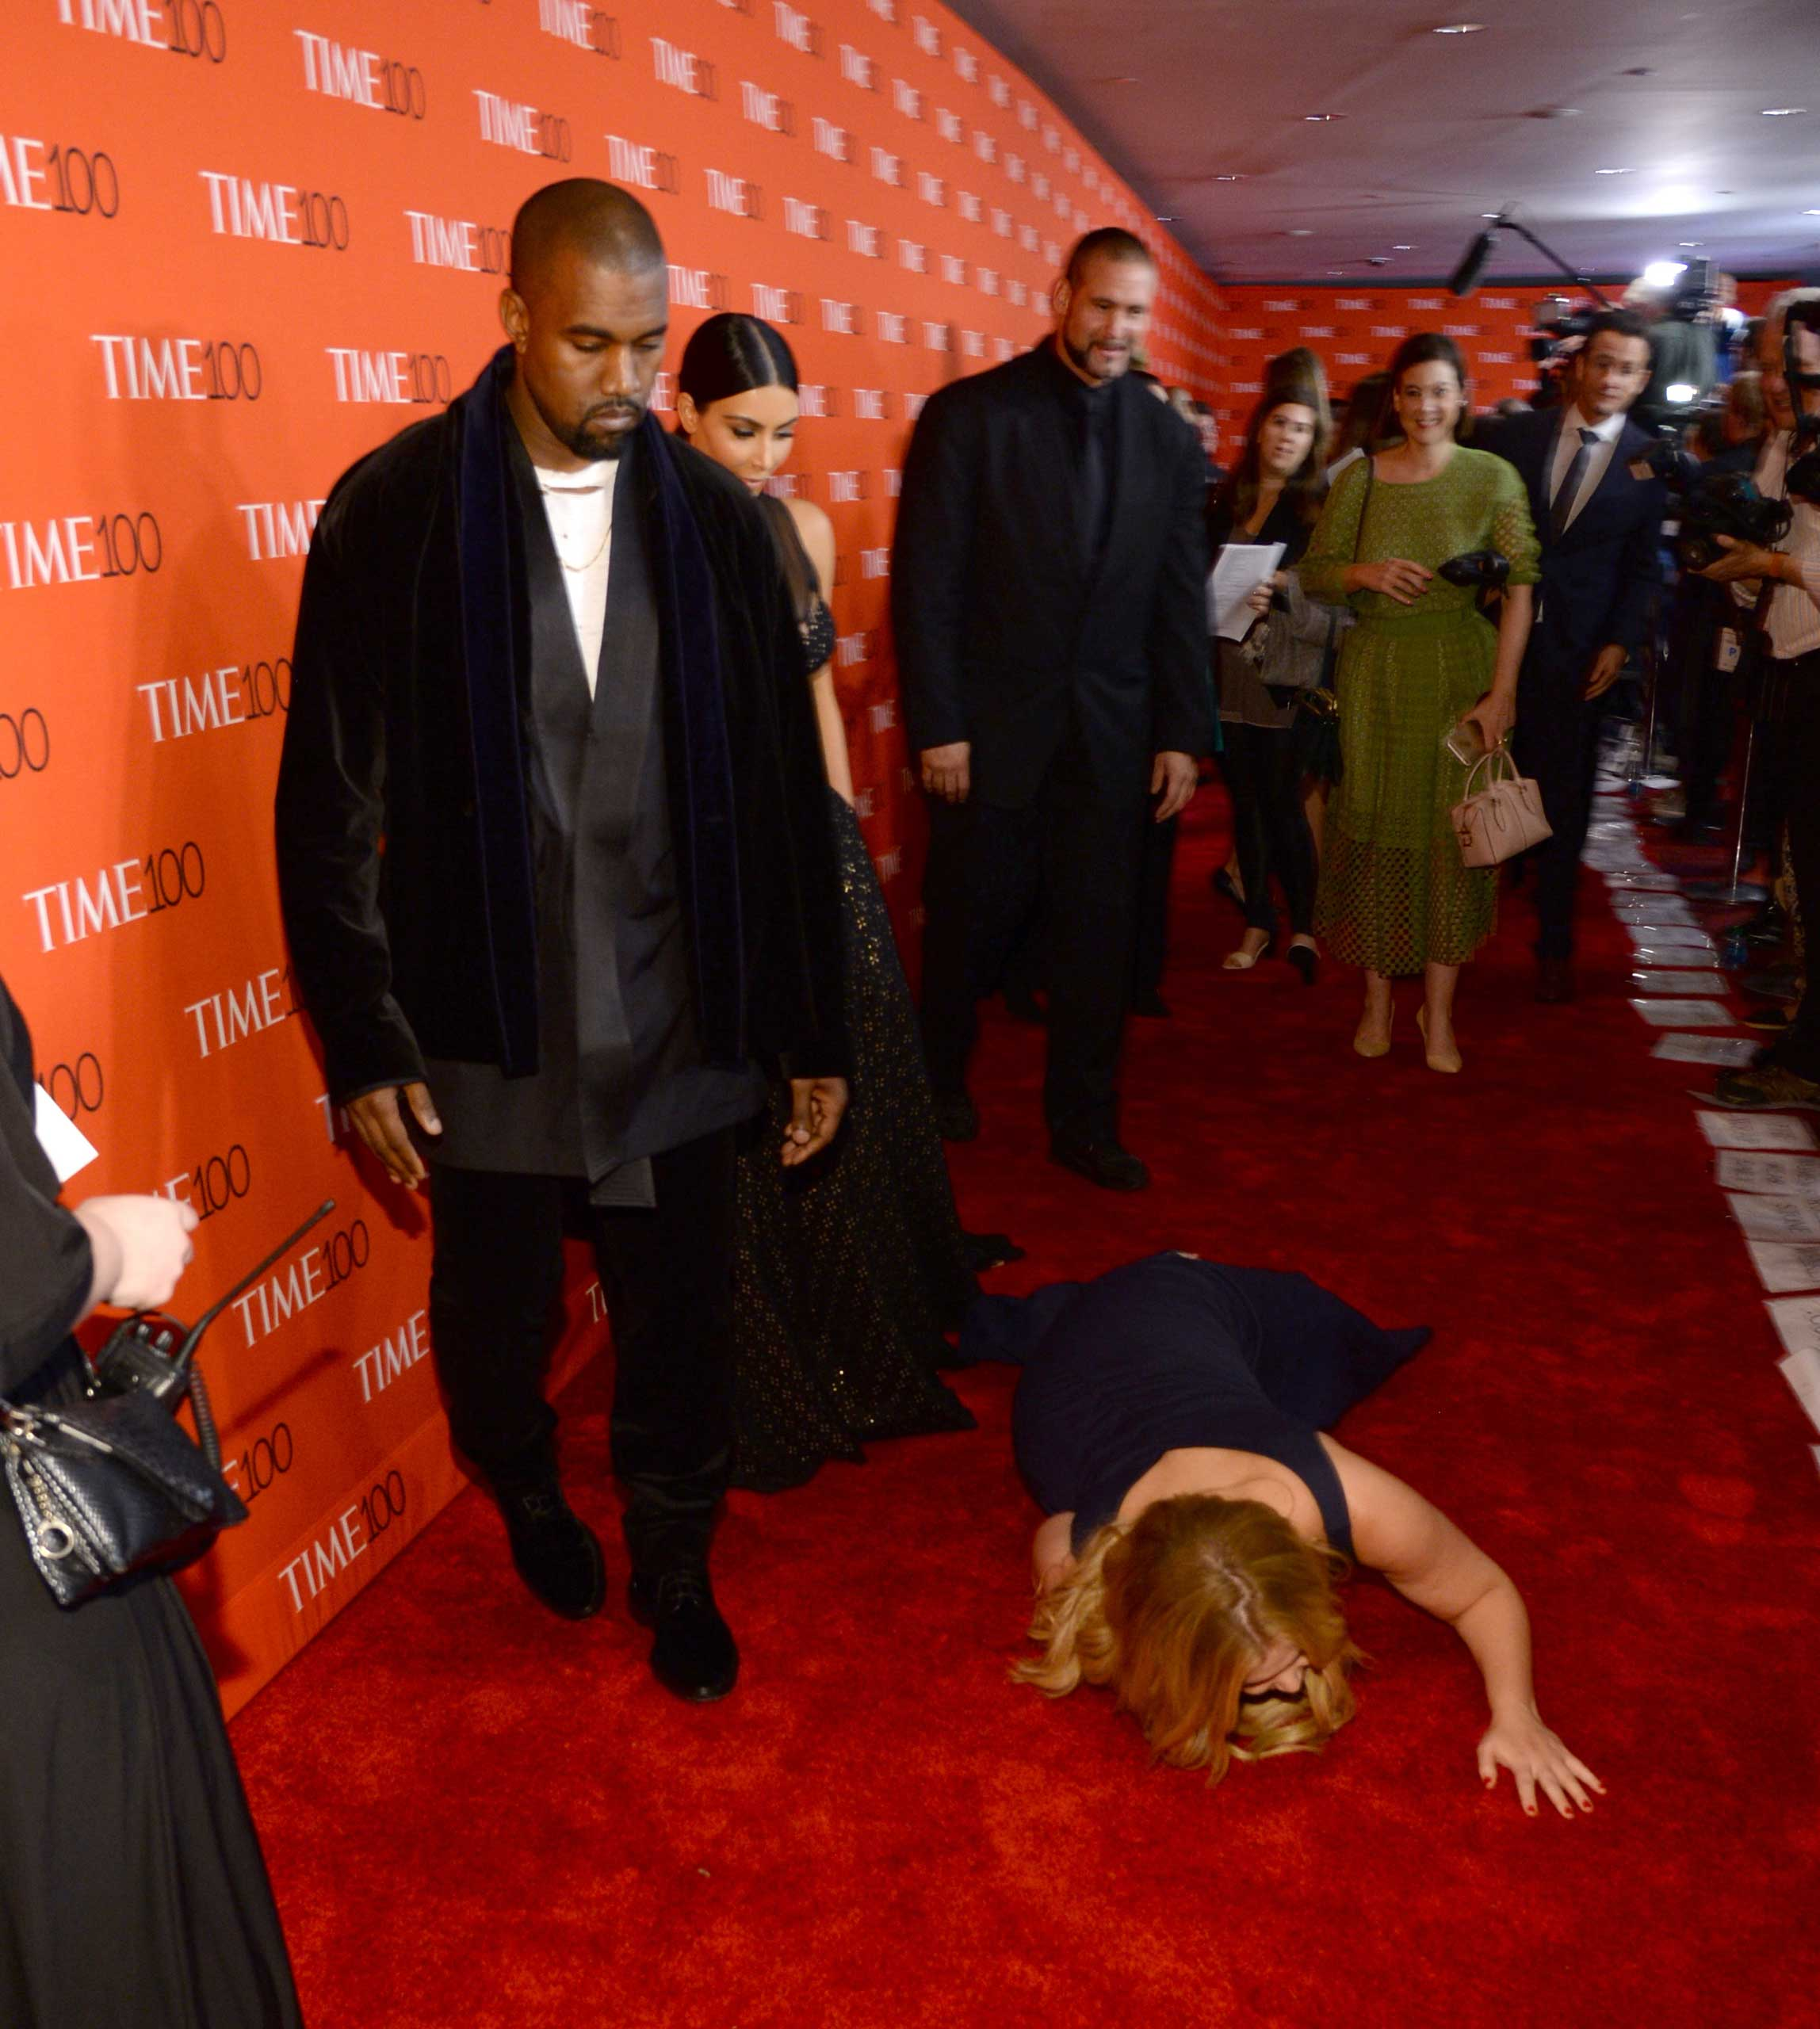 Kanye West and Kim Kardashian West, along with Amy Schumer, attend the TIME 100 Gala at Jazz at Lincoln Center in New York City on Apr. 21, 2015.